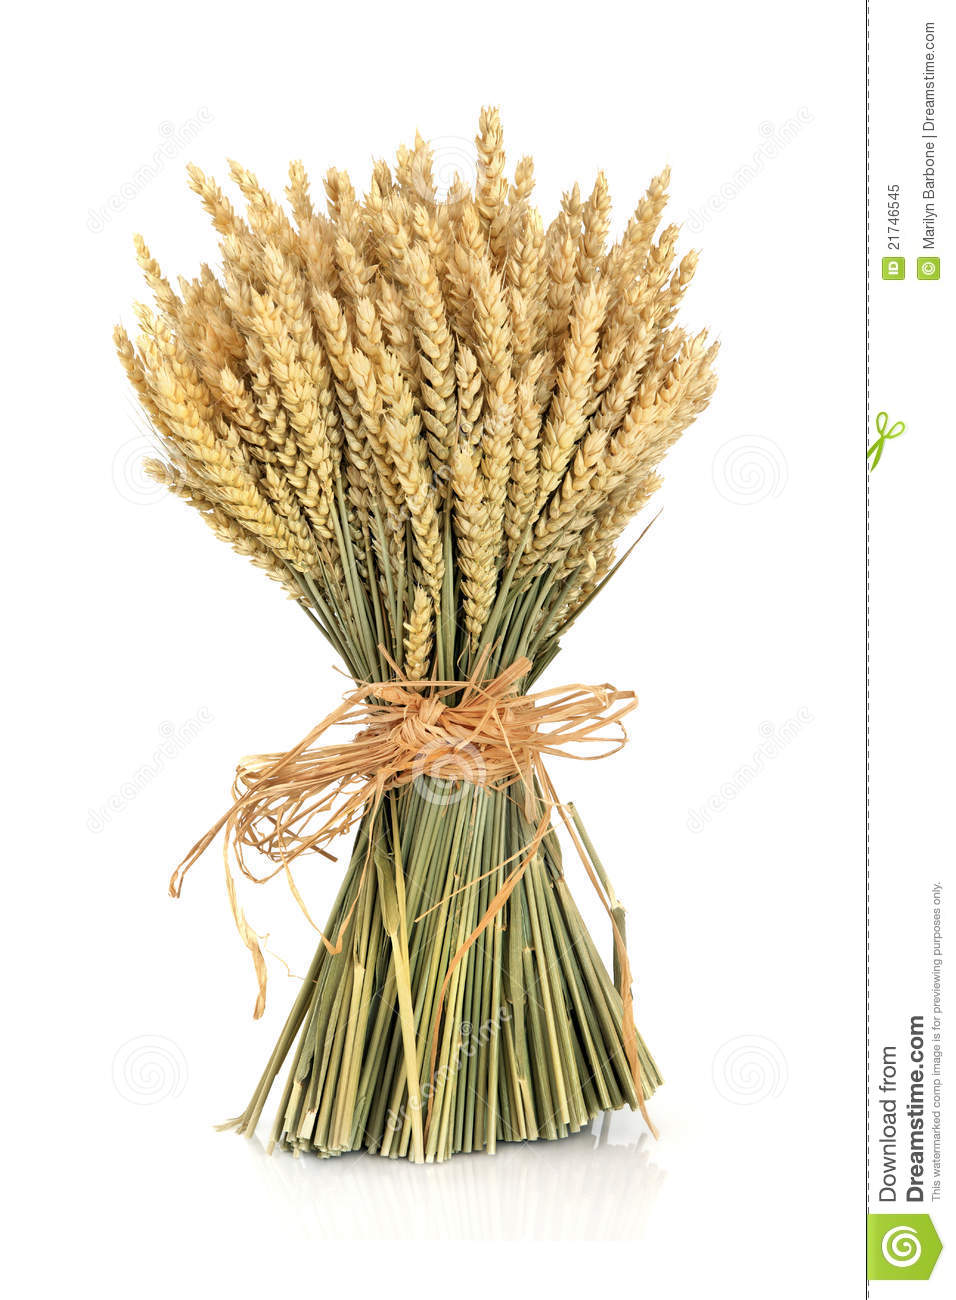 Wheat Bundle Royalty Free Stock Photo - Image: 21746545